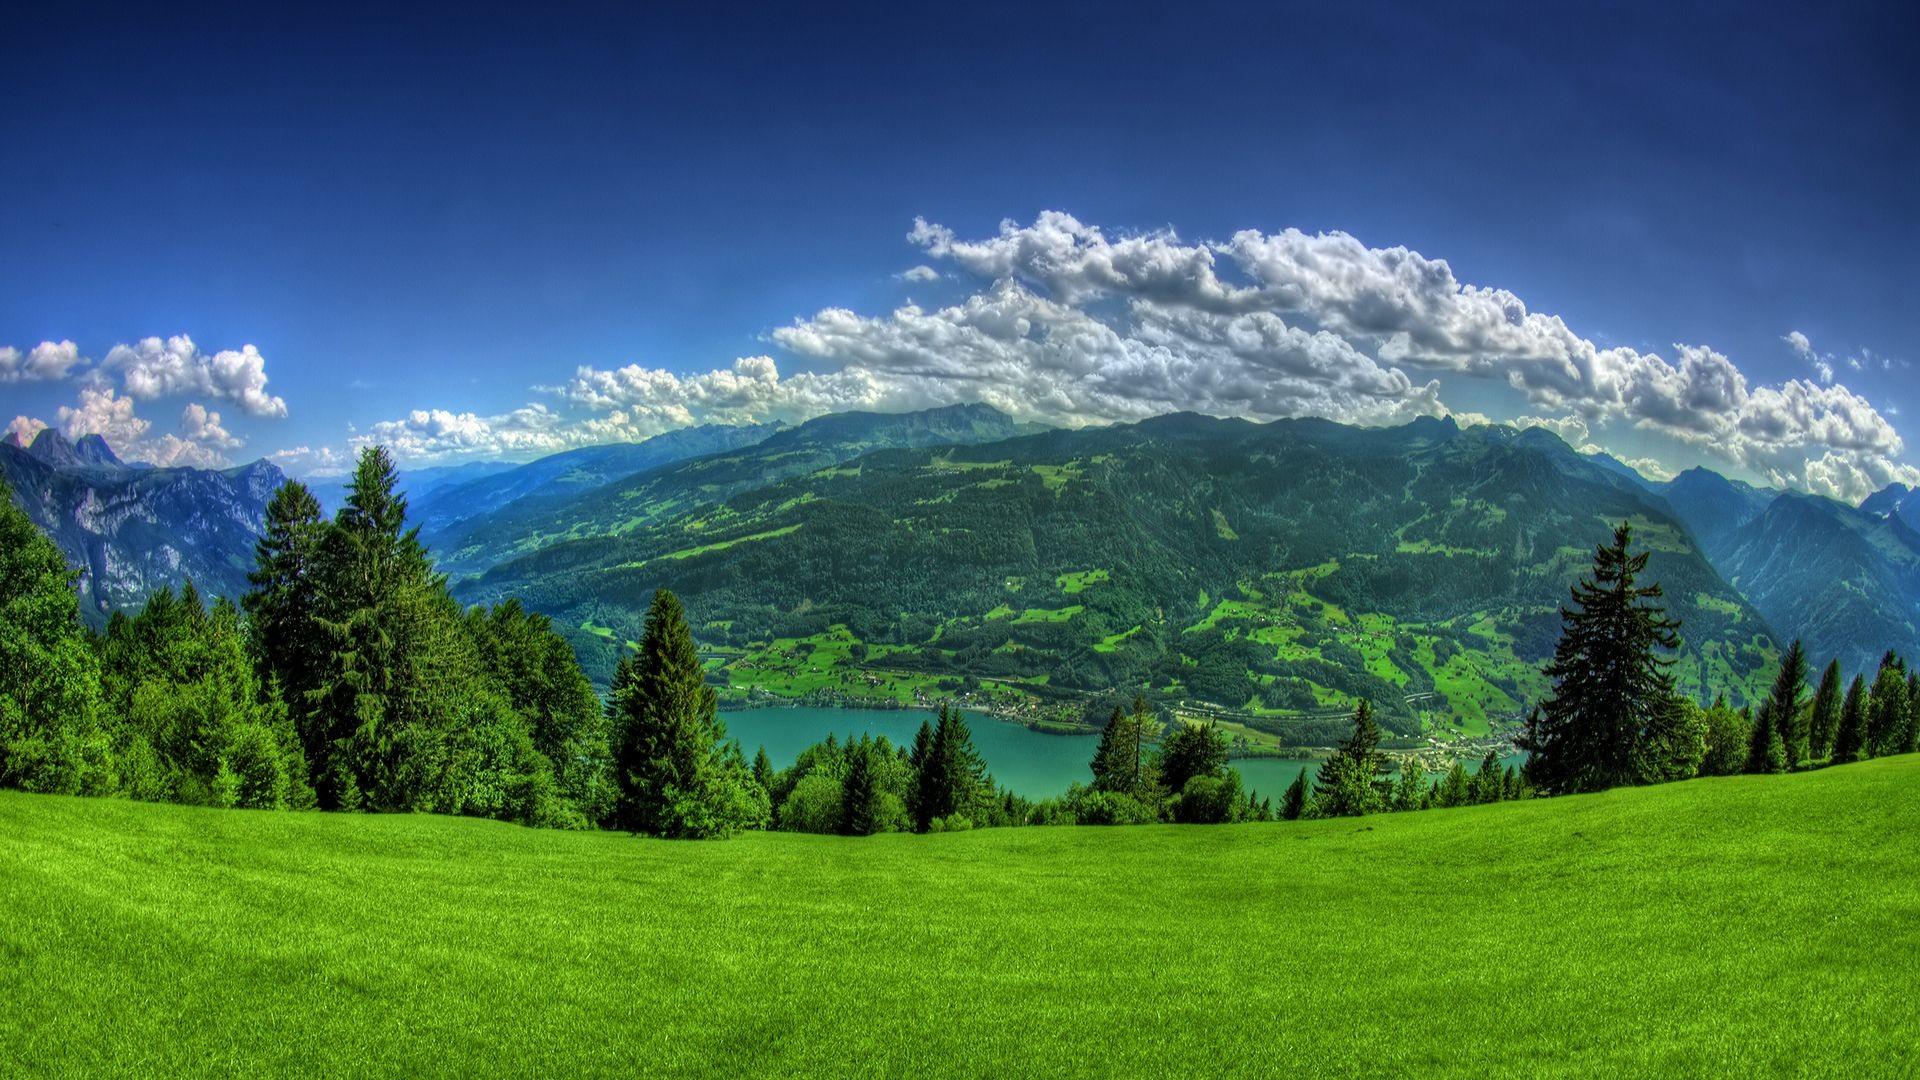 1920x1080 HD Widescreen Nature Wallpapers 1080p